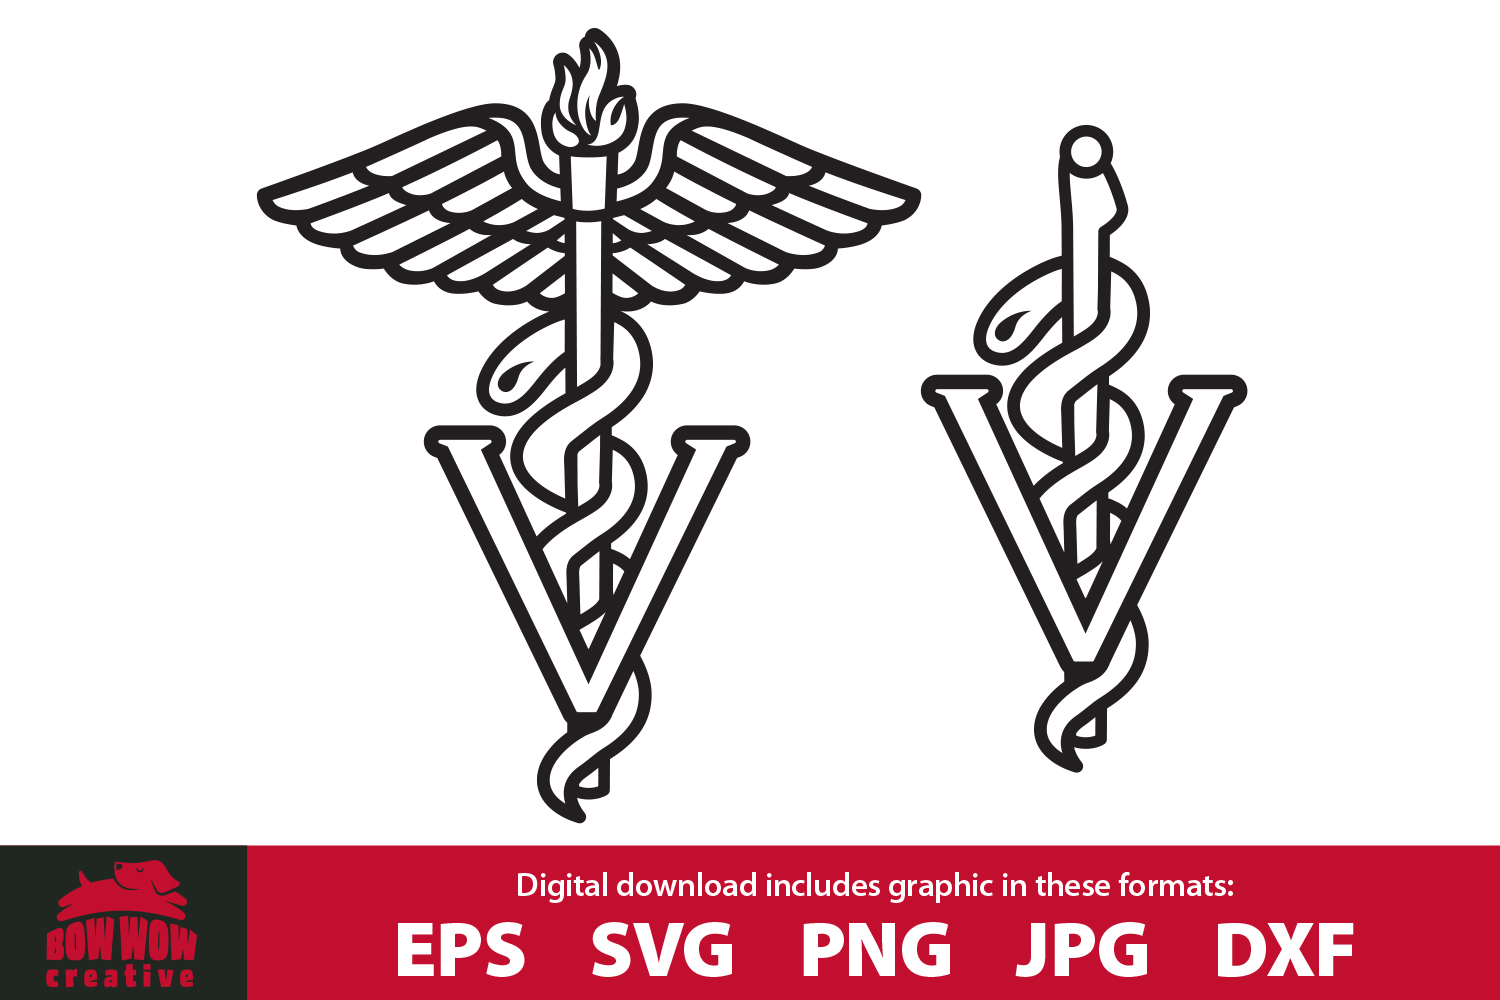 Veterinarian Caduceus Medical Staff - SVG, EPS, PNG, DXF example image 1